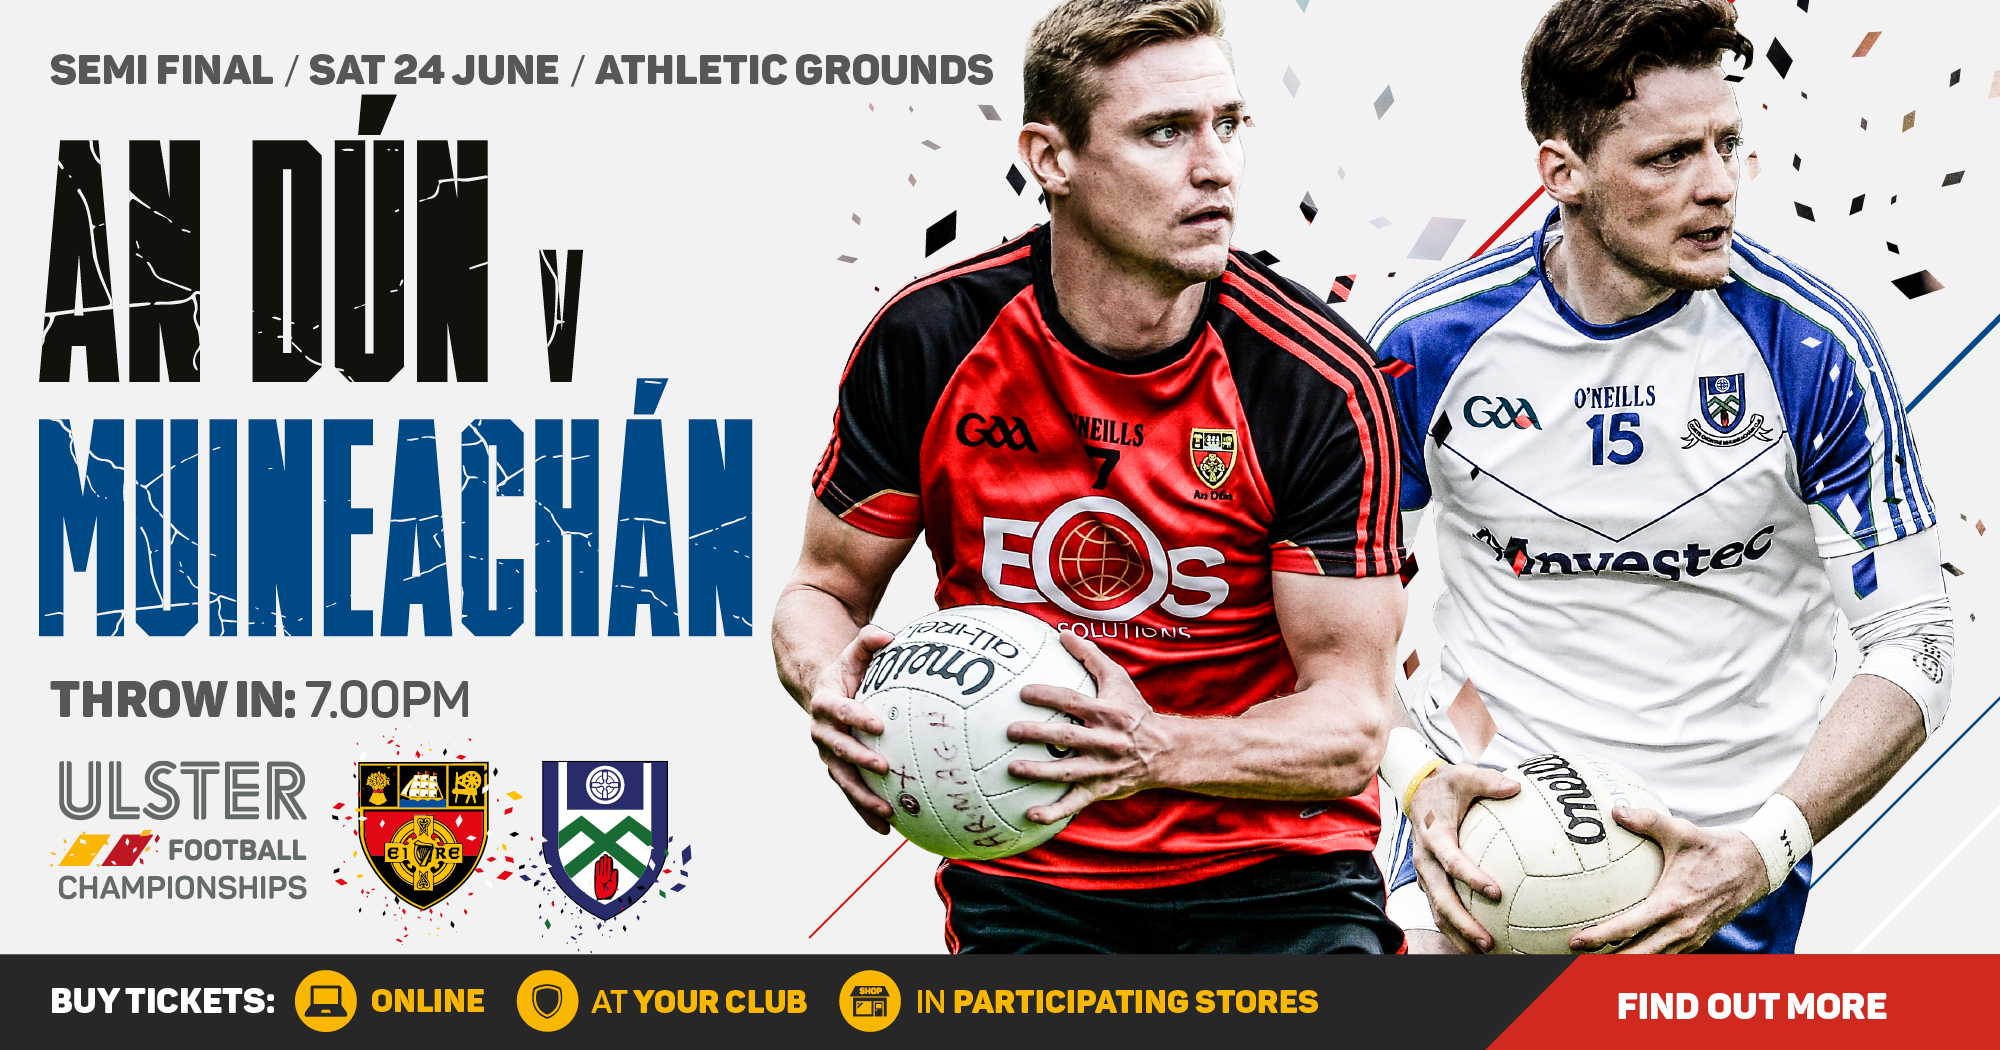 Ulster Senior Football Championship - Down v Monaghan